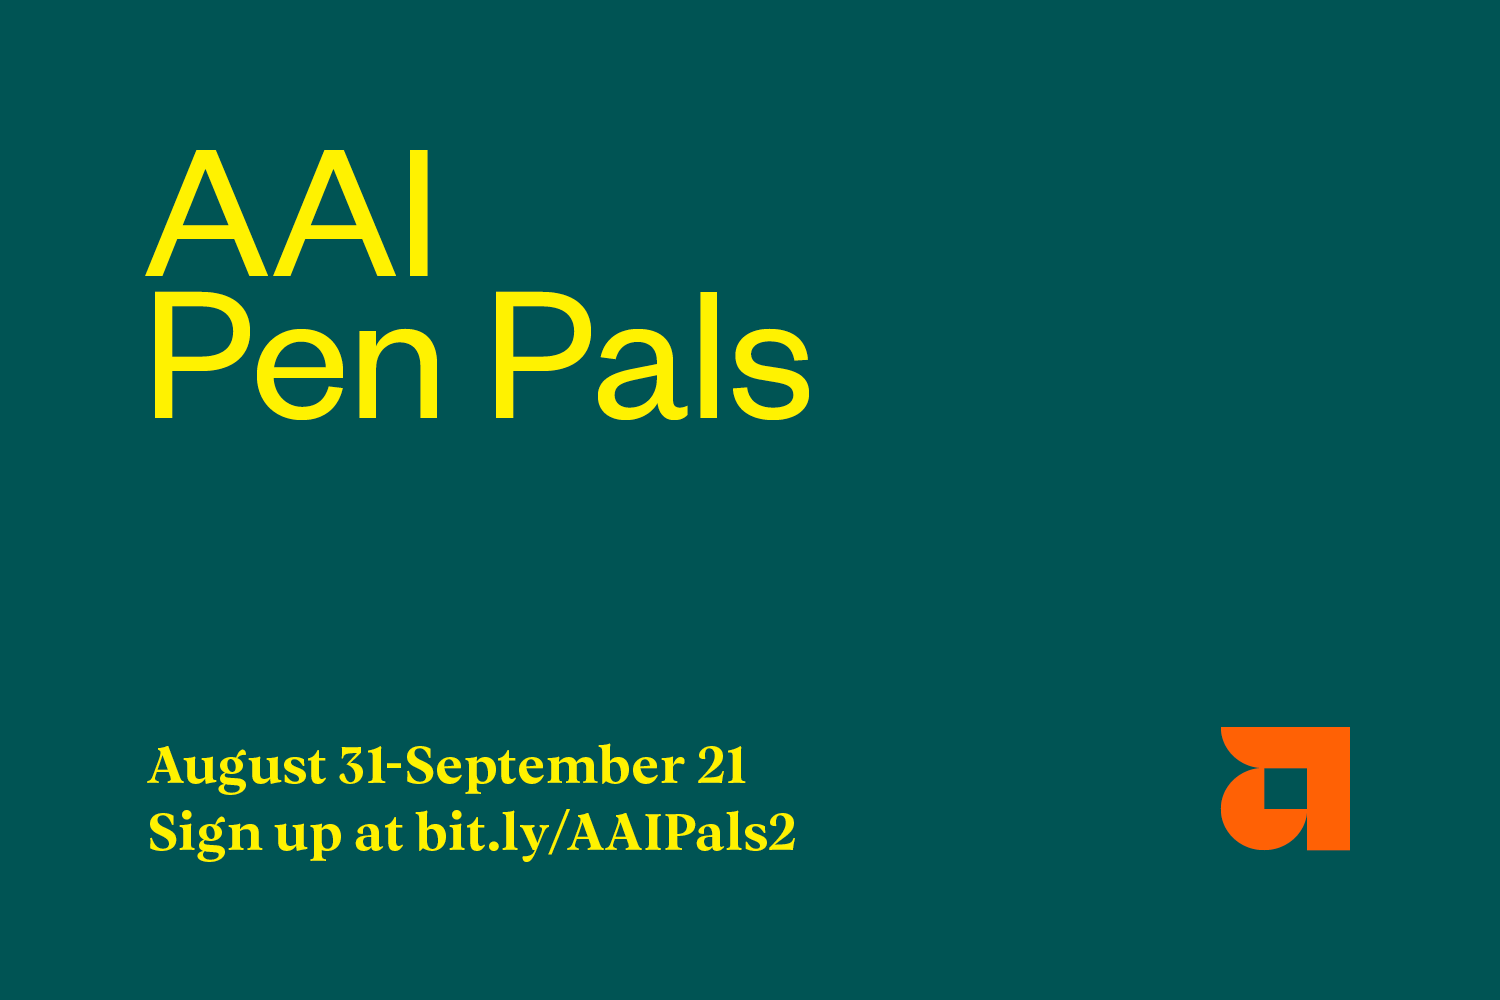 AAI Pen Pals - August 31 to September 21